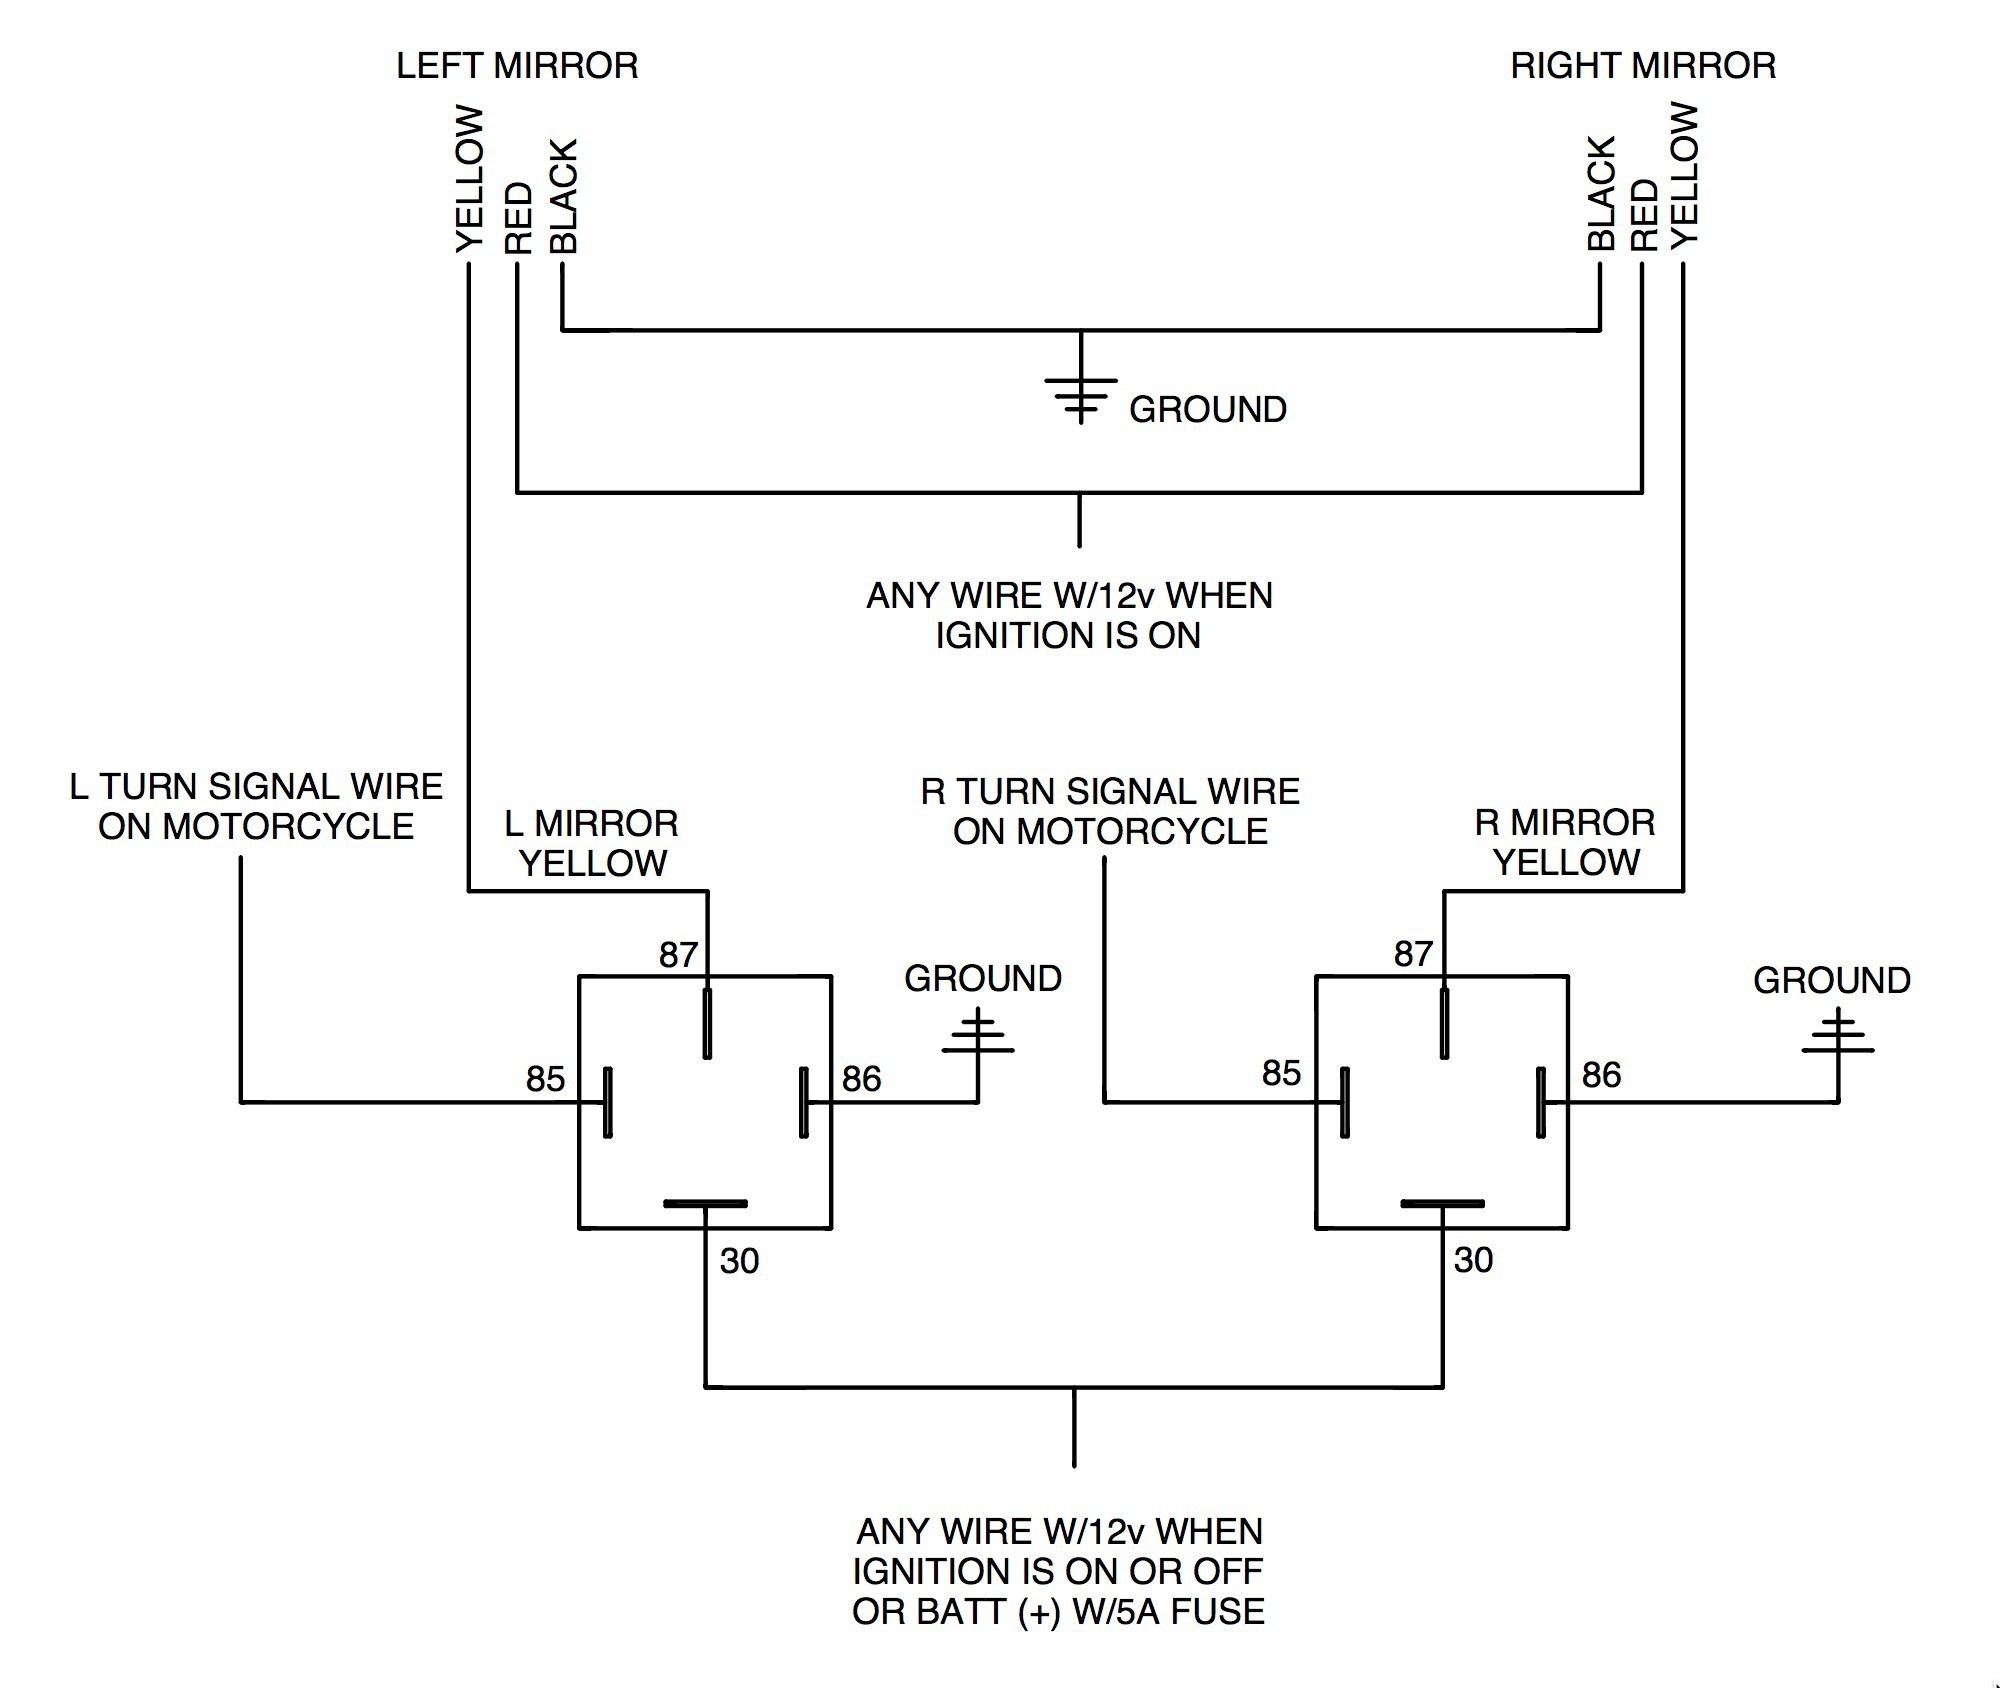 Flasher Relay Wiring Diagram Lovely 12v Relay Circuit Diagram Diagram Of Flasher Relay Wiring Diagram